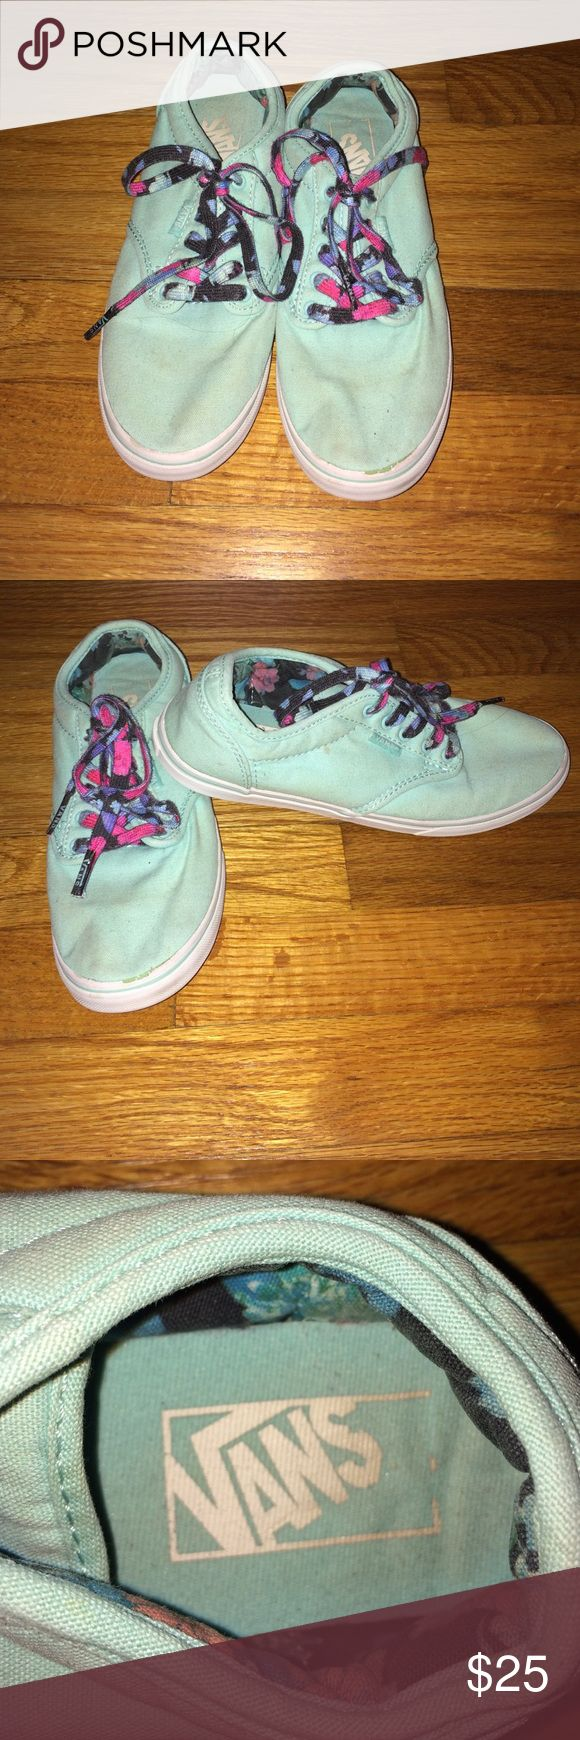 Mint VANS These mint VANS have been worn a lot but with a wash it look pretty good. 6.5 in women's with floral shoe laces. Vans Shoes Sneakers